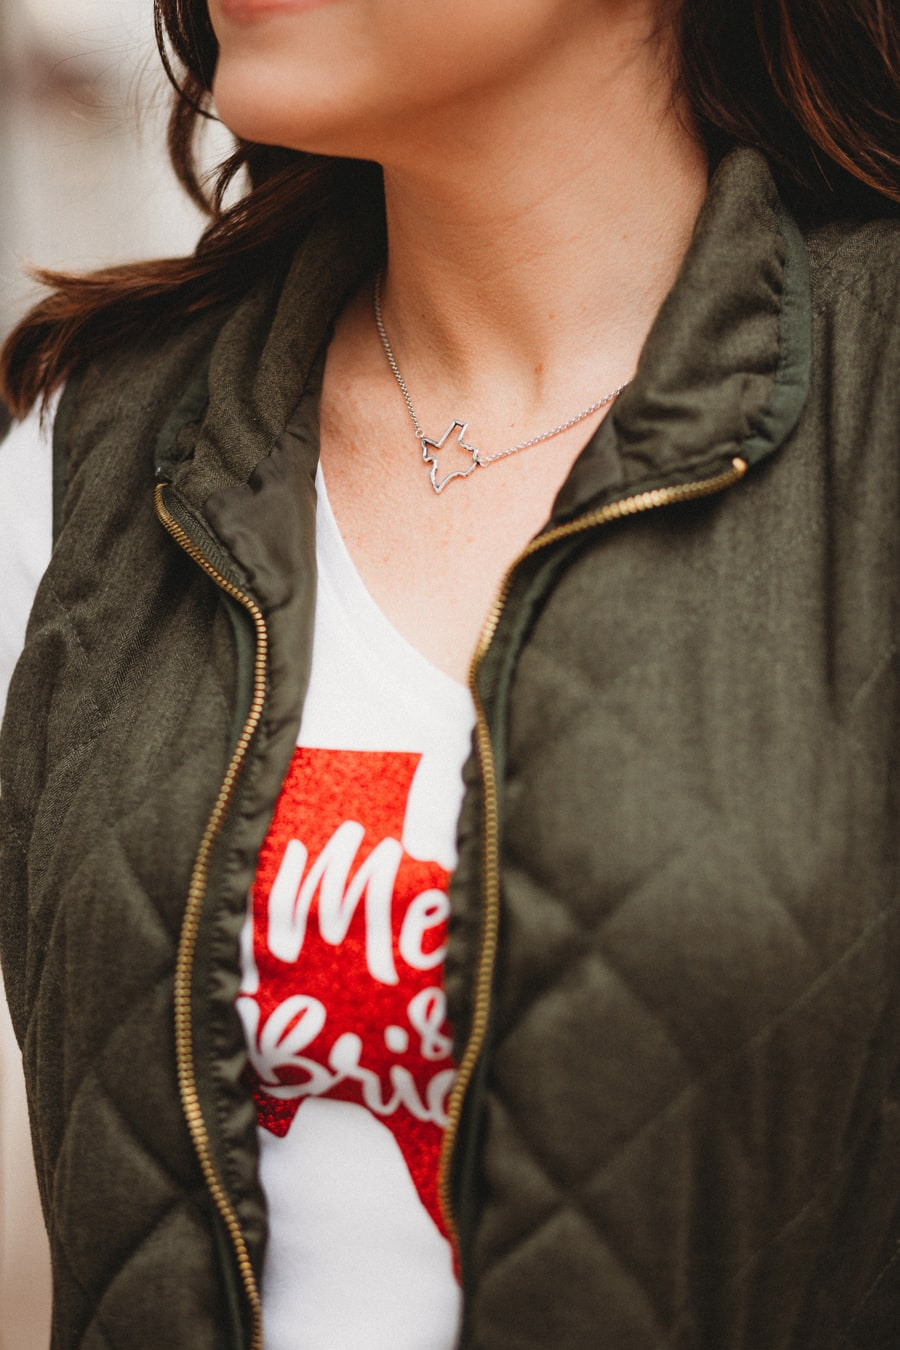 james avery texas necklace